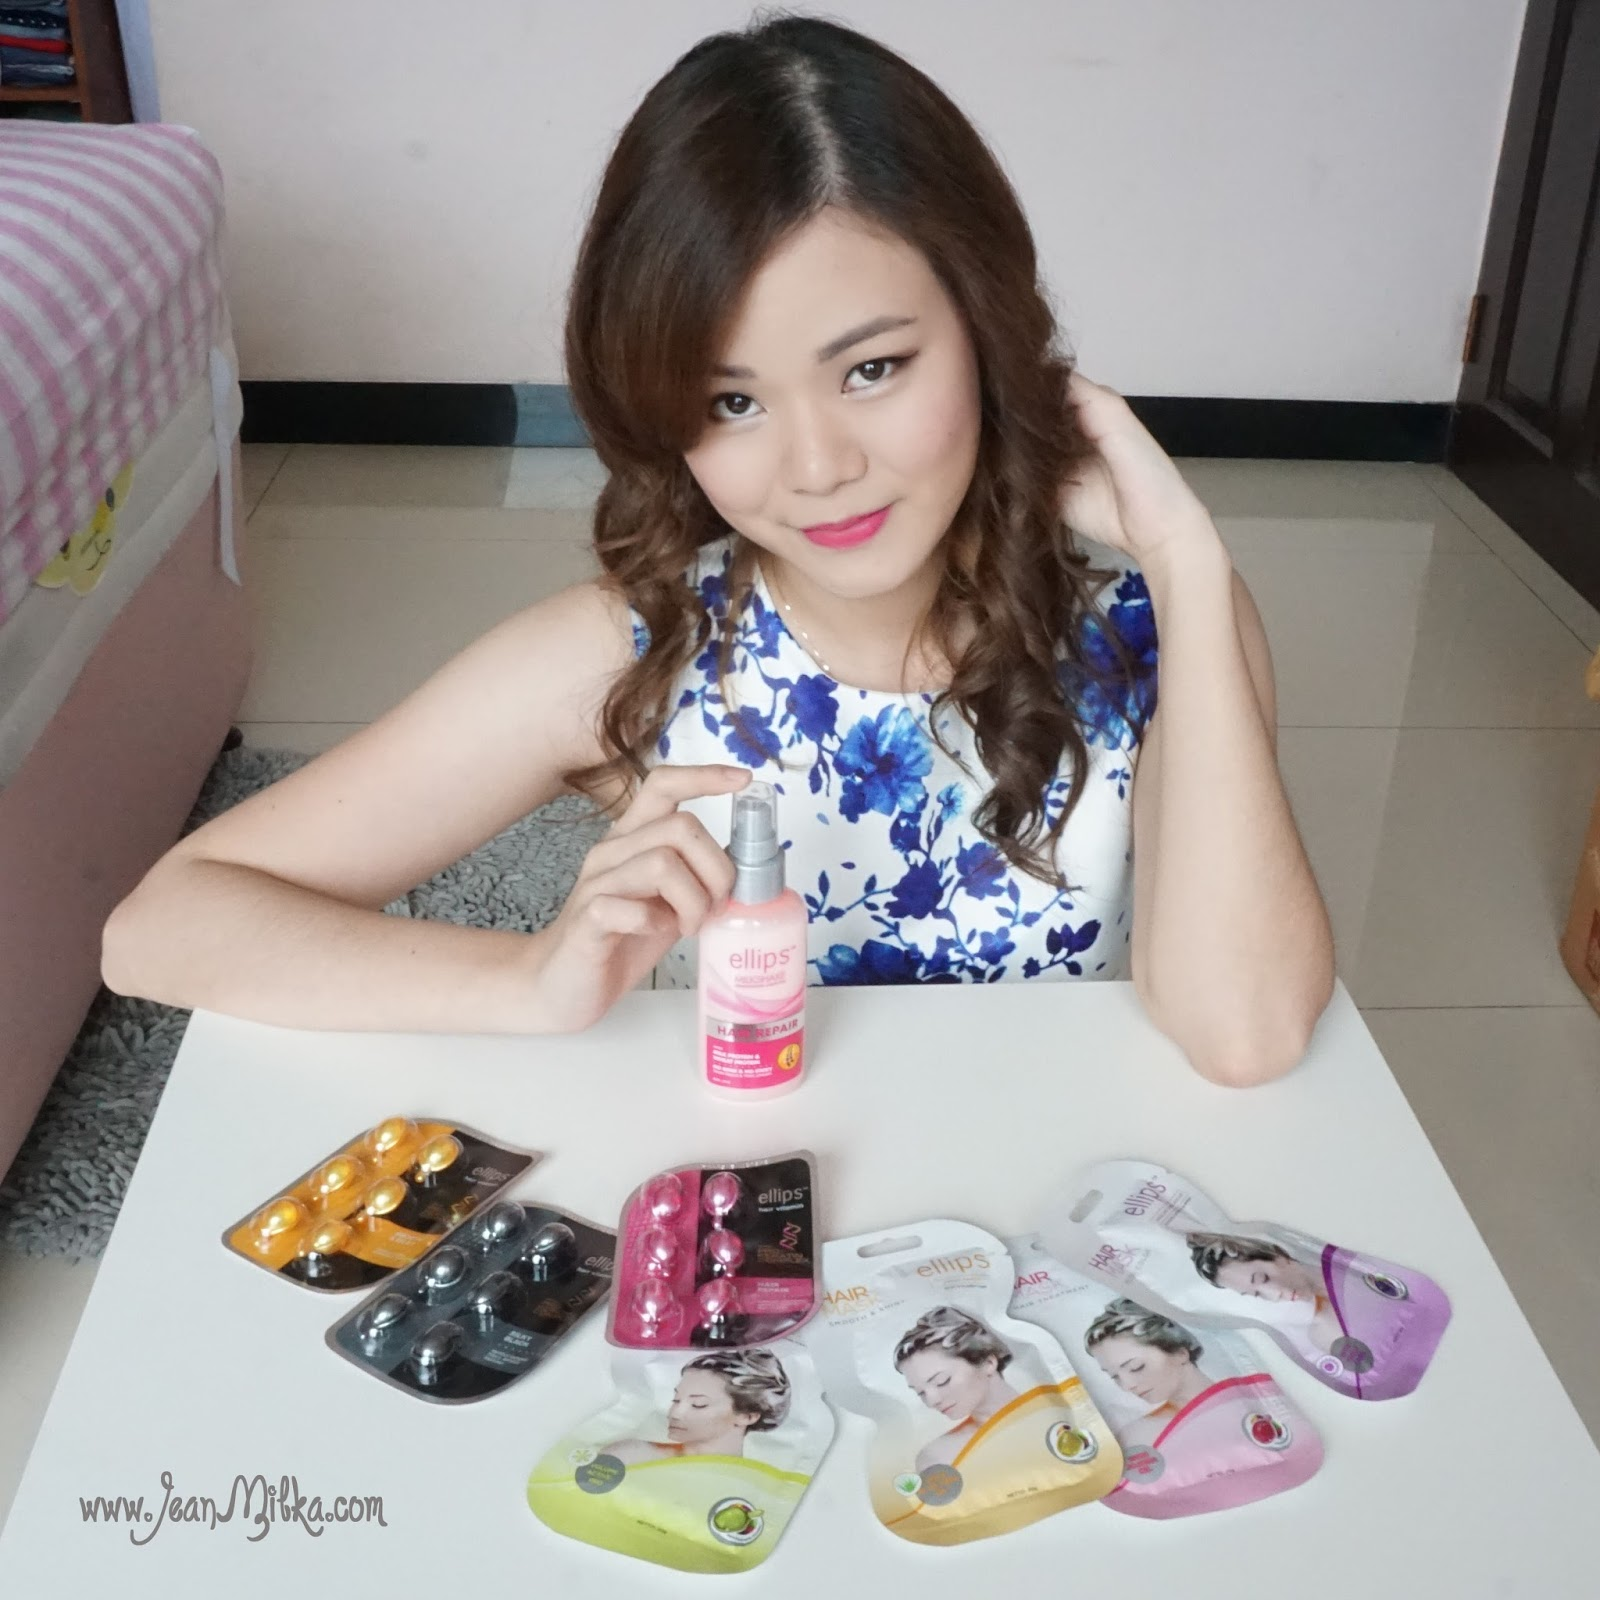 Sponsored My Everyday Hair Routine With Ellips Hair Treatment Jean Milka